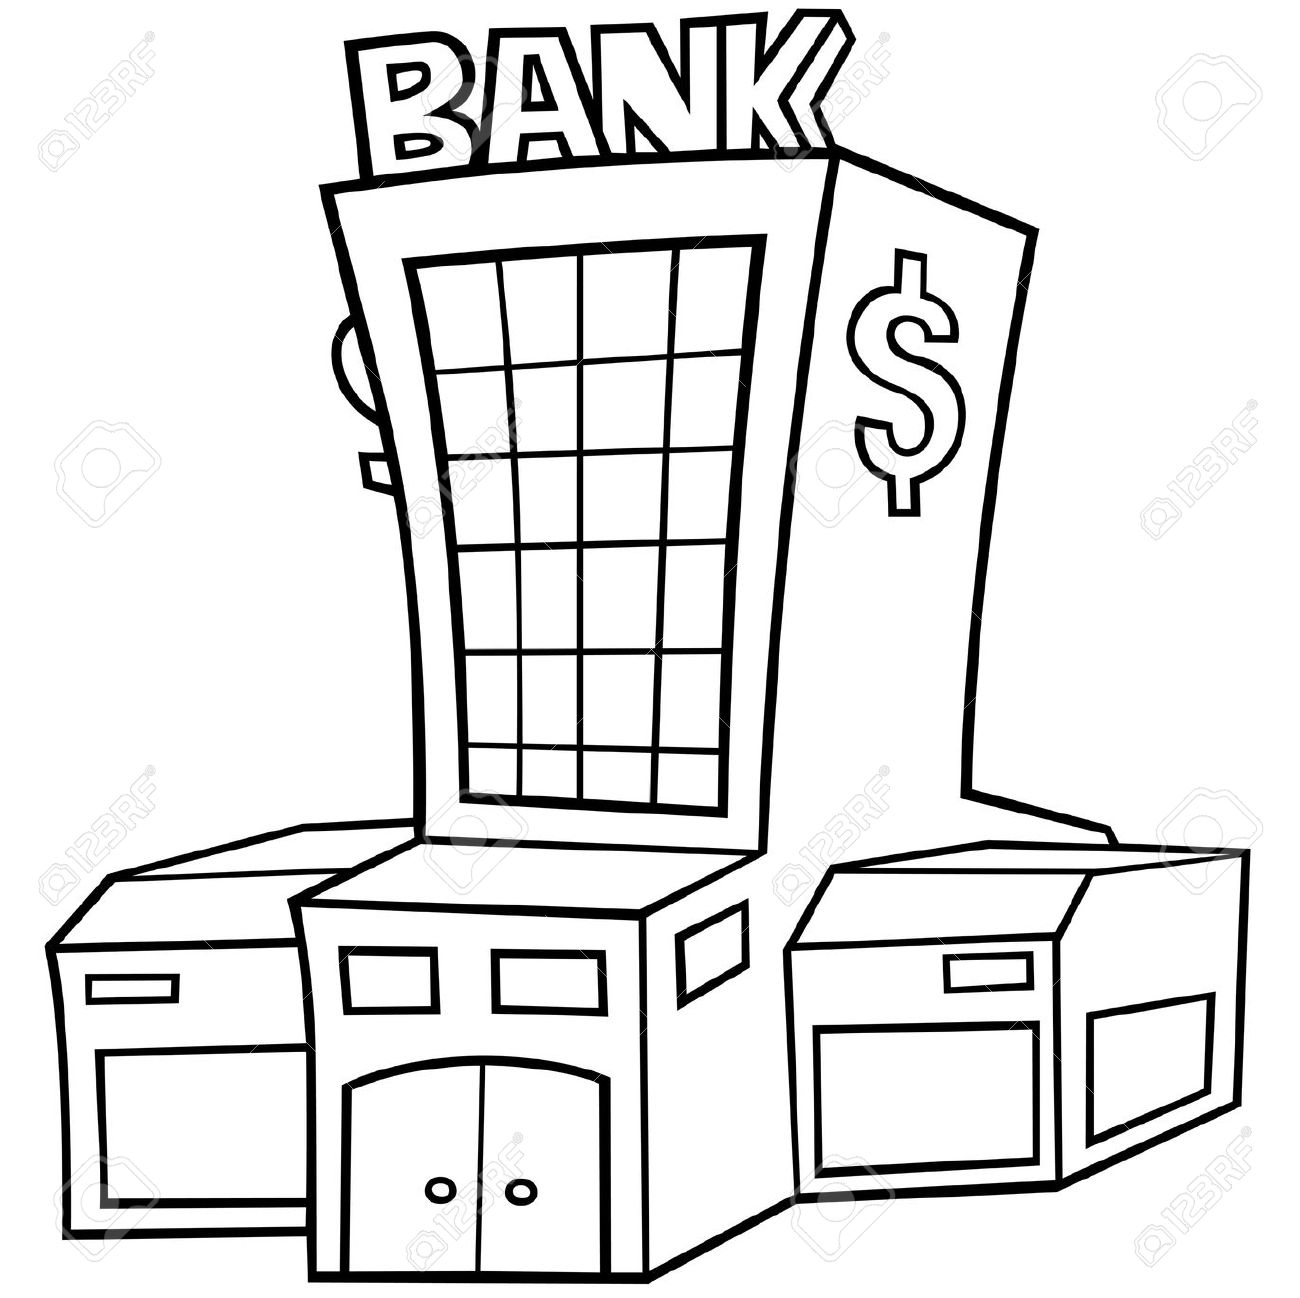 Black and white cliparts. Bank clipart